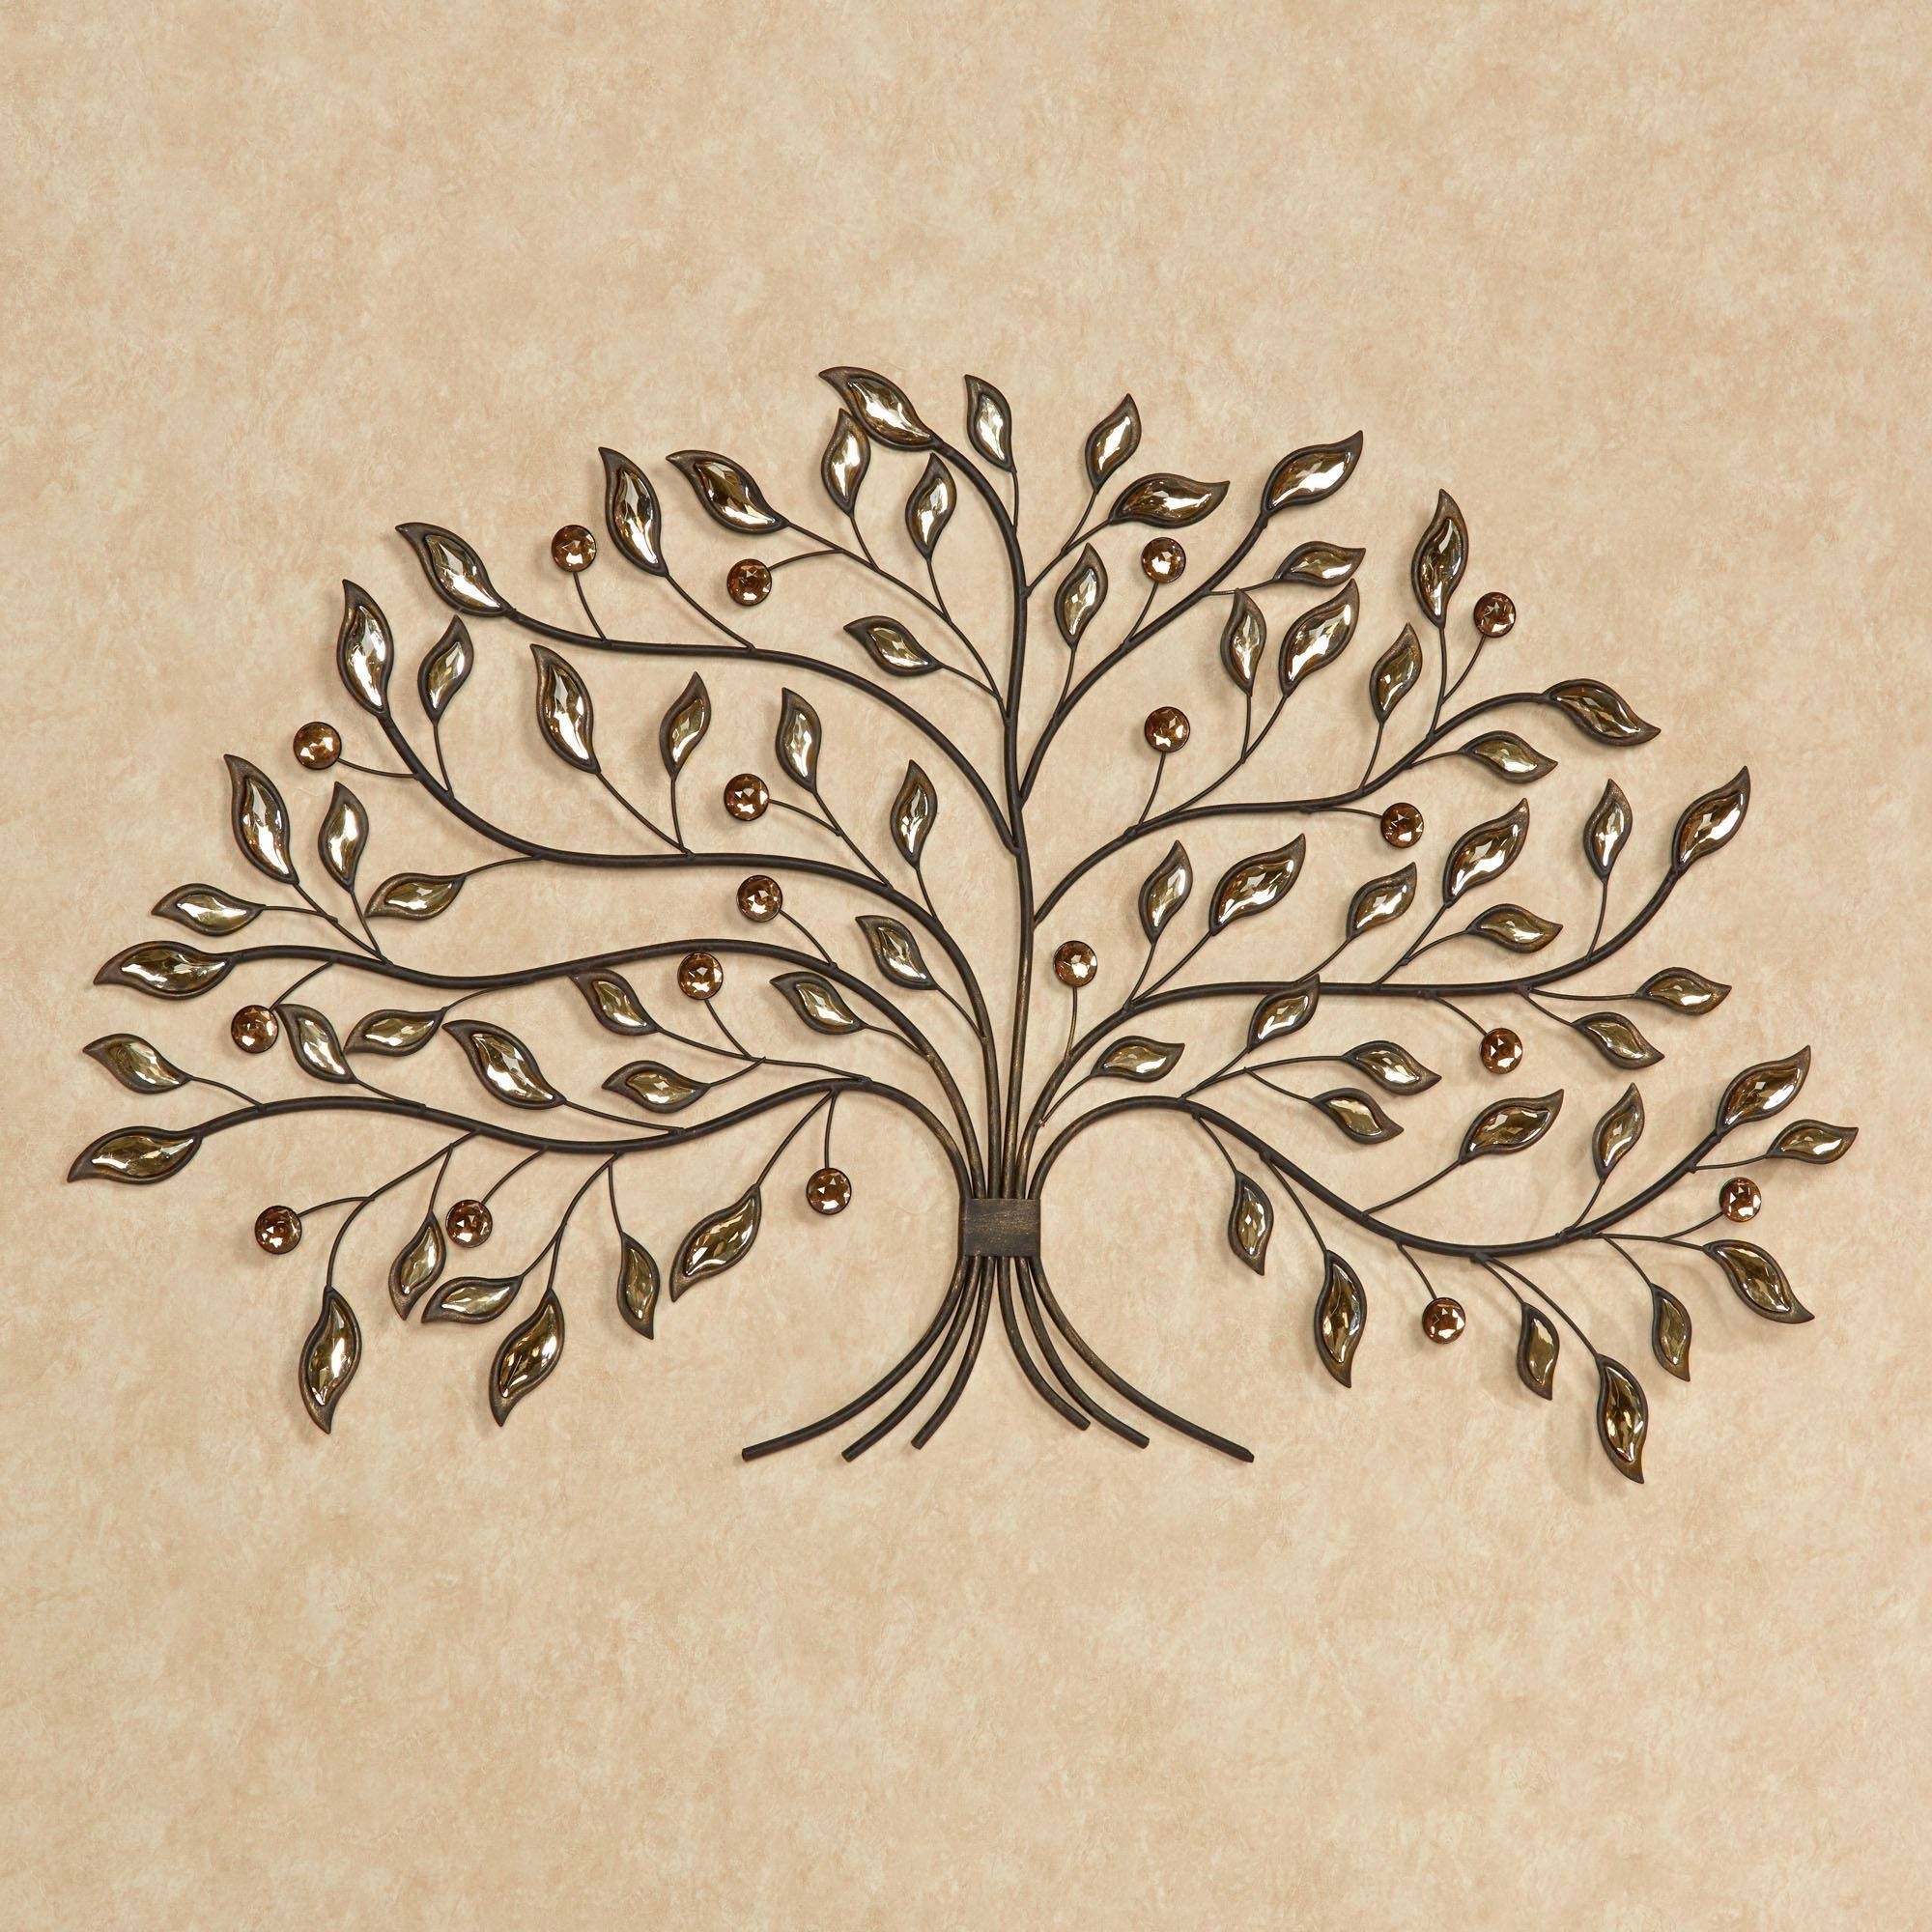 Alexandra Vining Gem Tree Metal Wall Art Pertaining To Newest Metal Wall Art Trees (View 2 of 20)